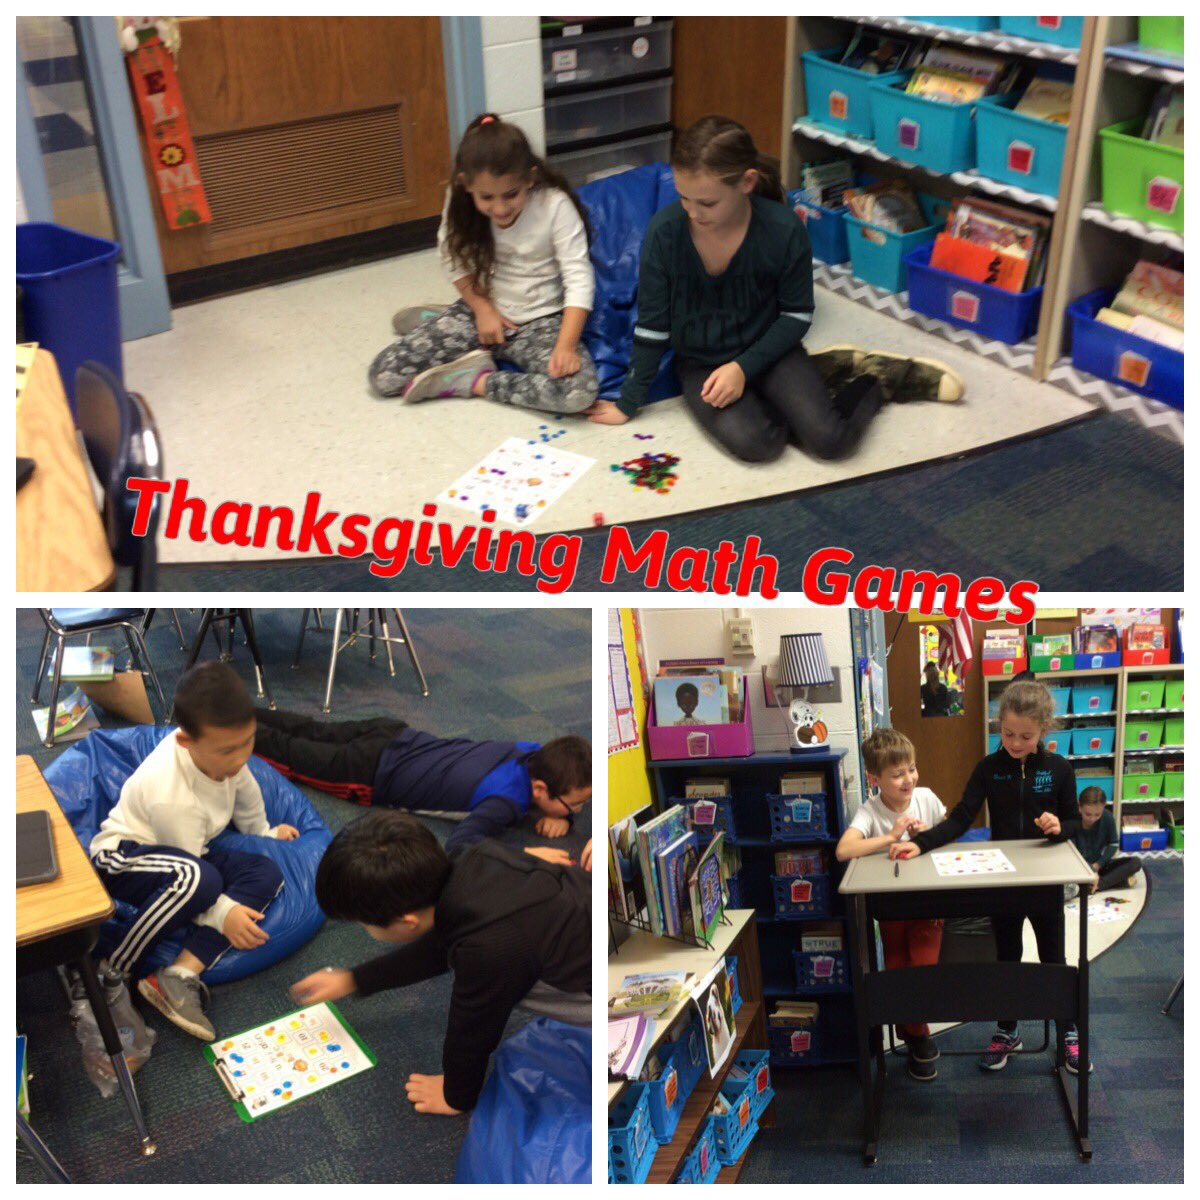 test Twitter Media - Playing Thanksgiving math games! #d30learns https://t.co/LZEeWoDQhp